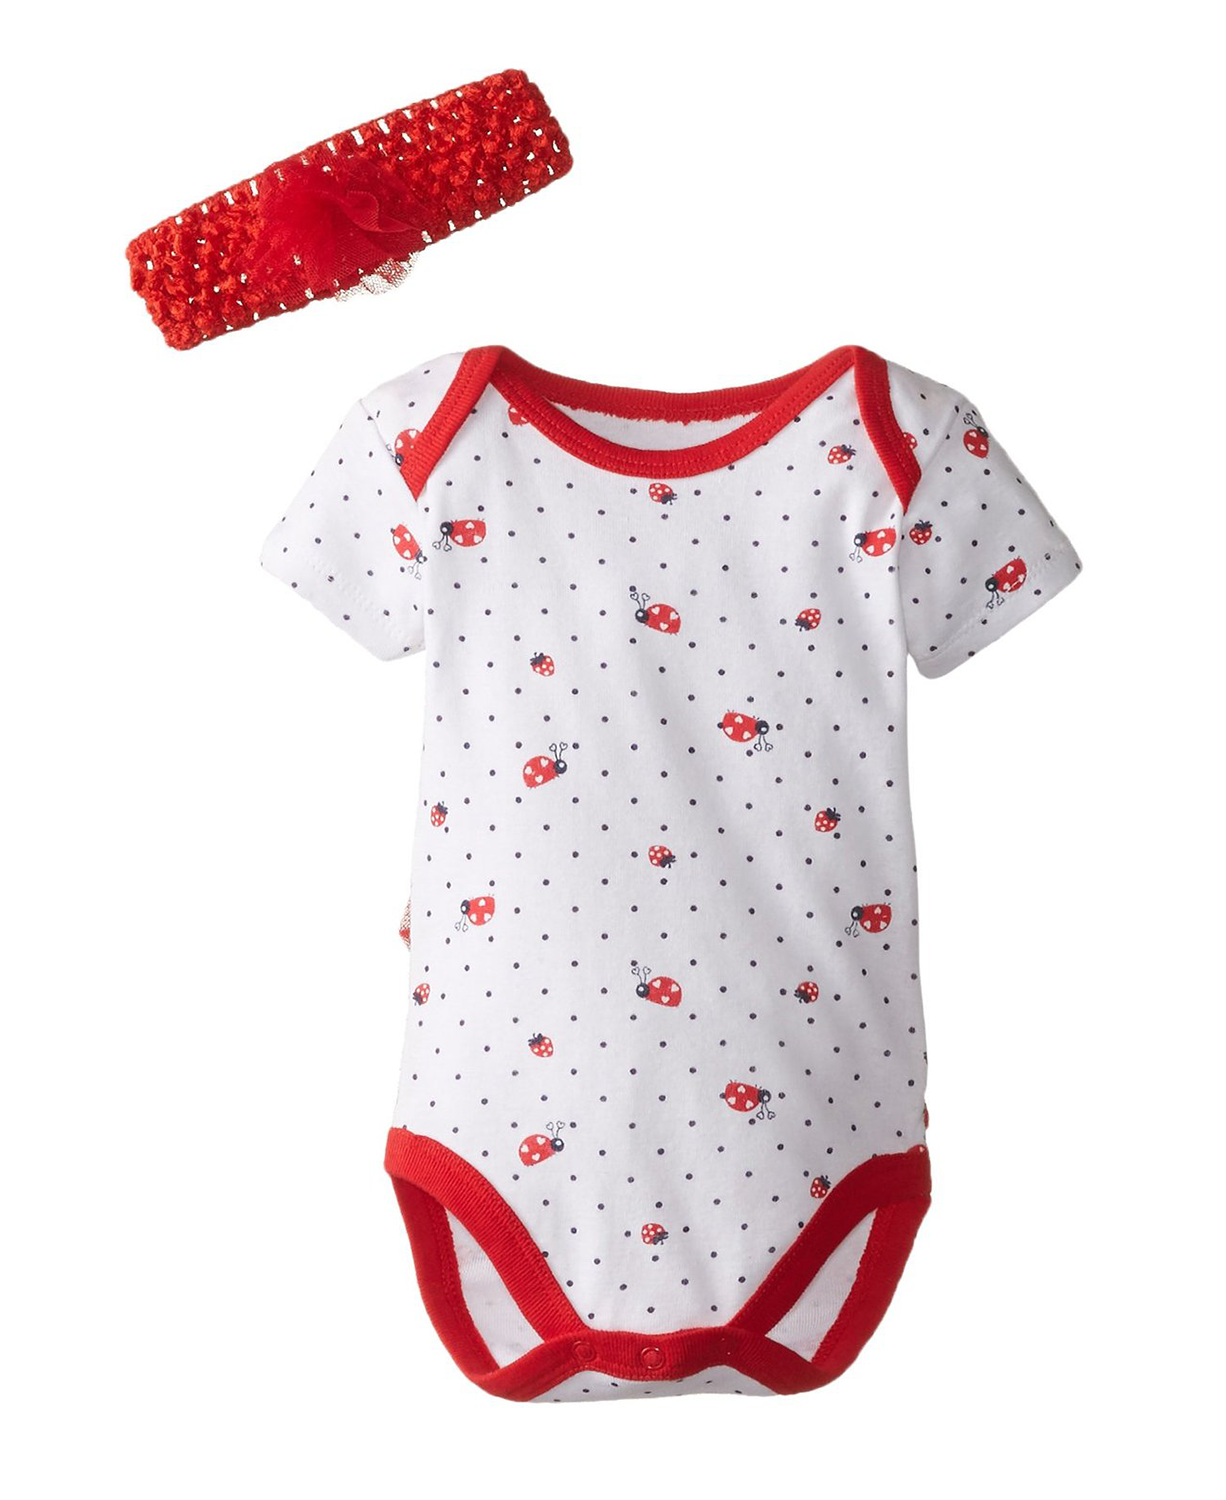 Baby clothes online for girls